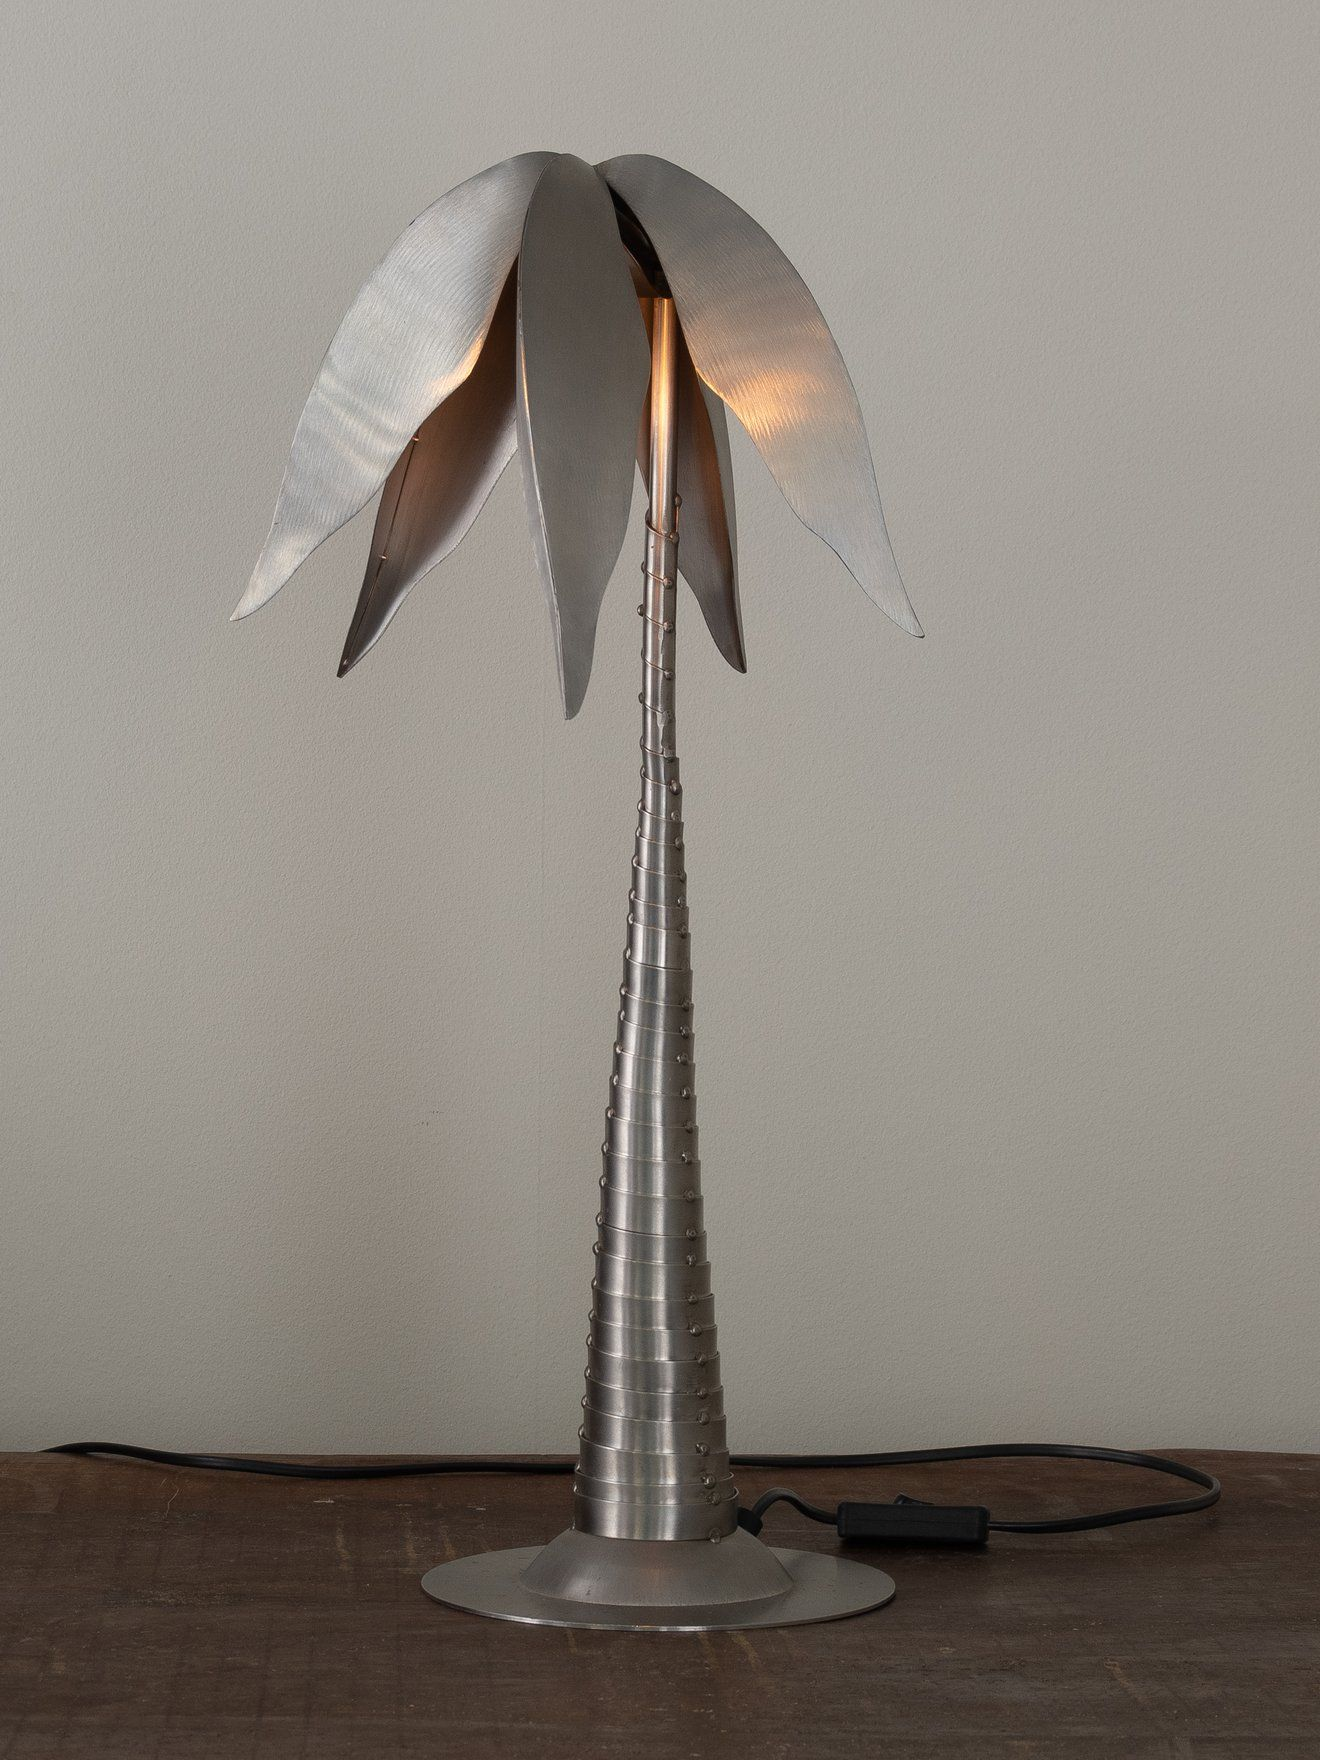 Machinist Palm Tree Lamp In 2020 Tree Lamp Lamp Table Lamp